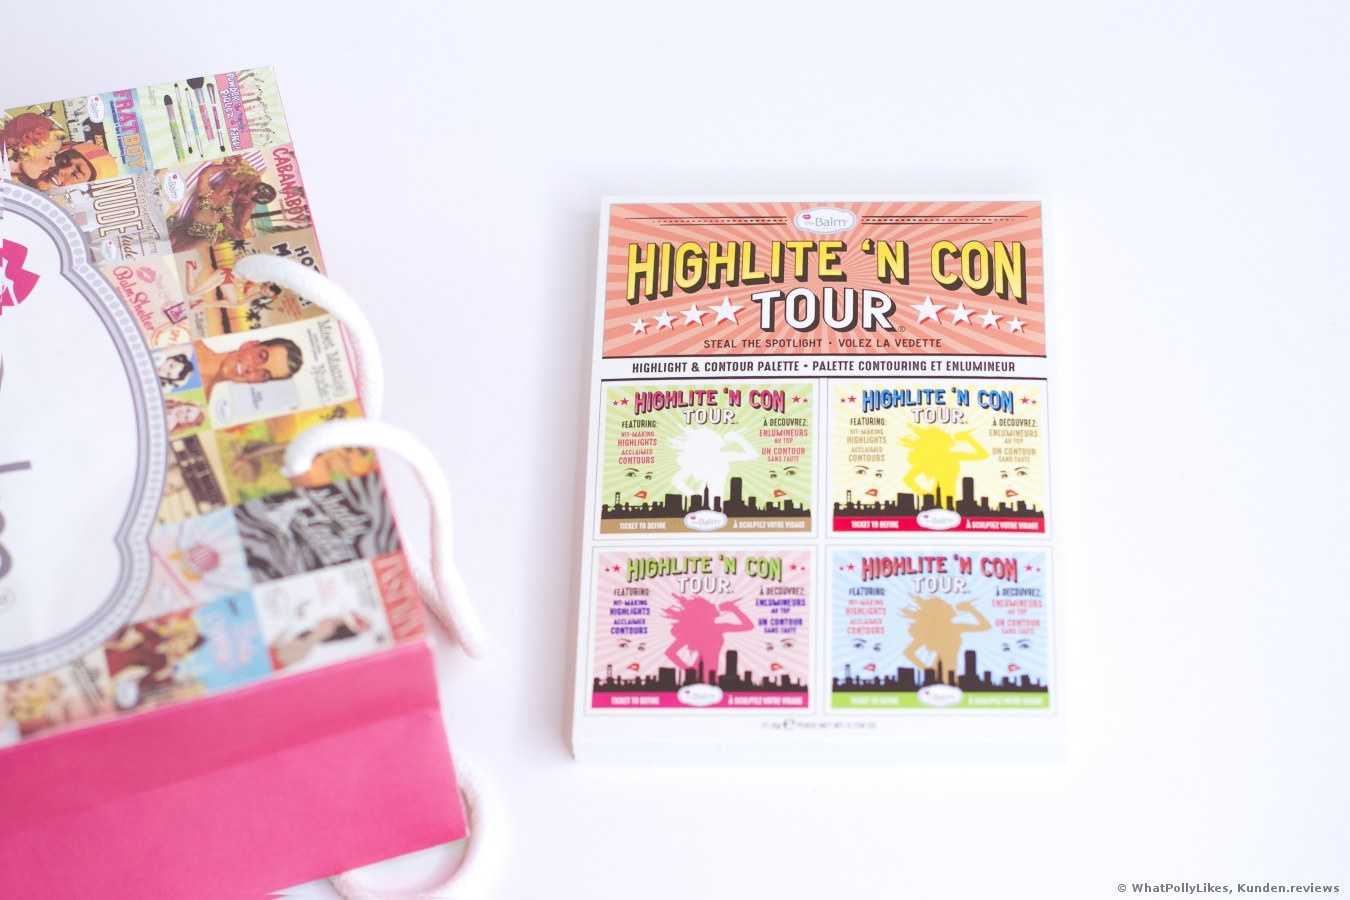 The Balm Highlite 'N Con Tour